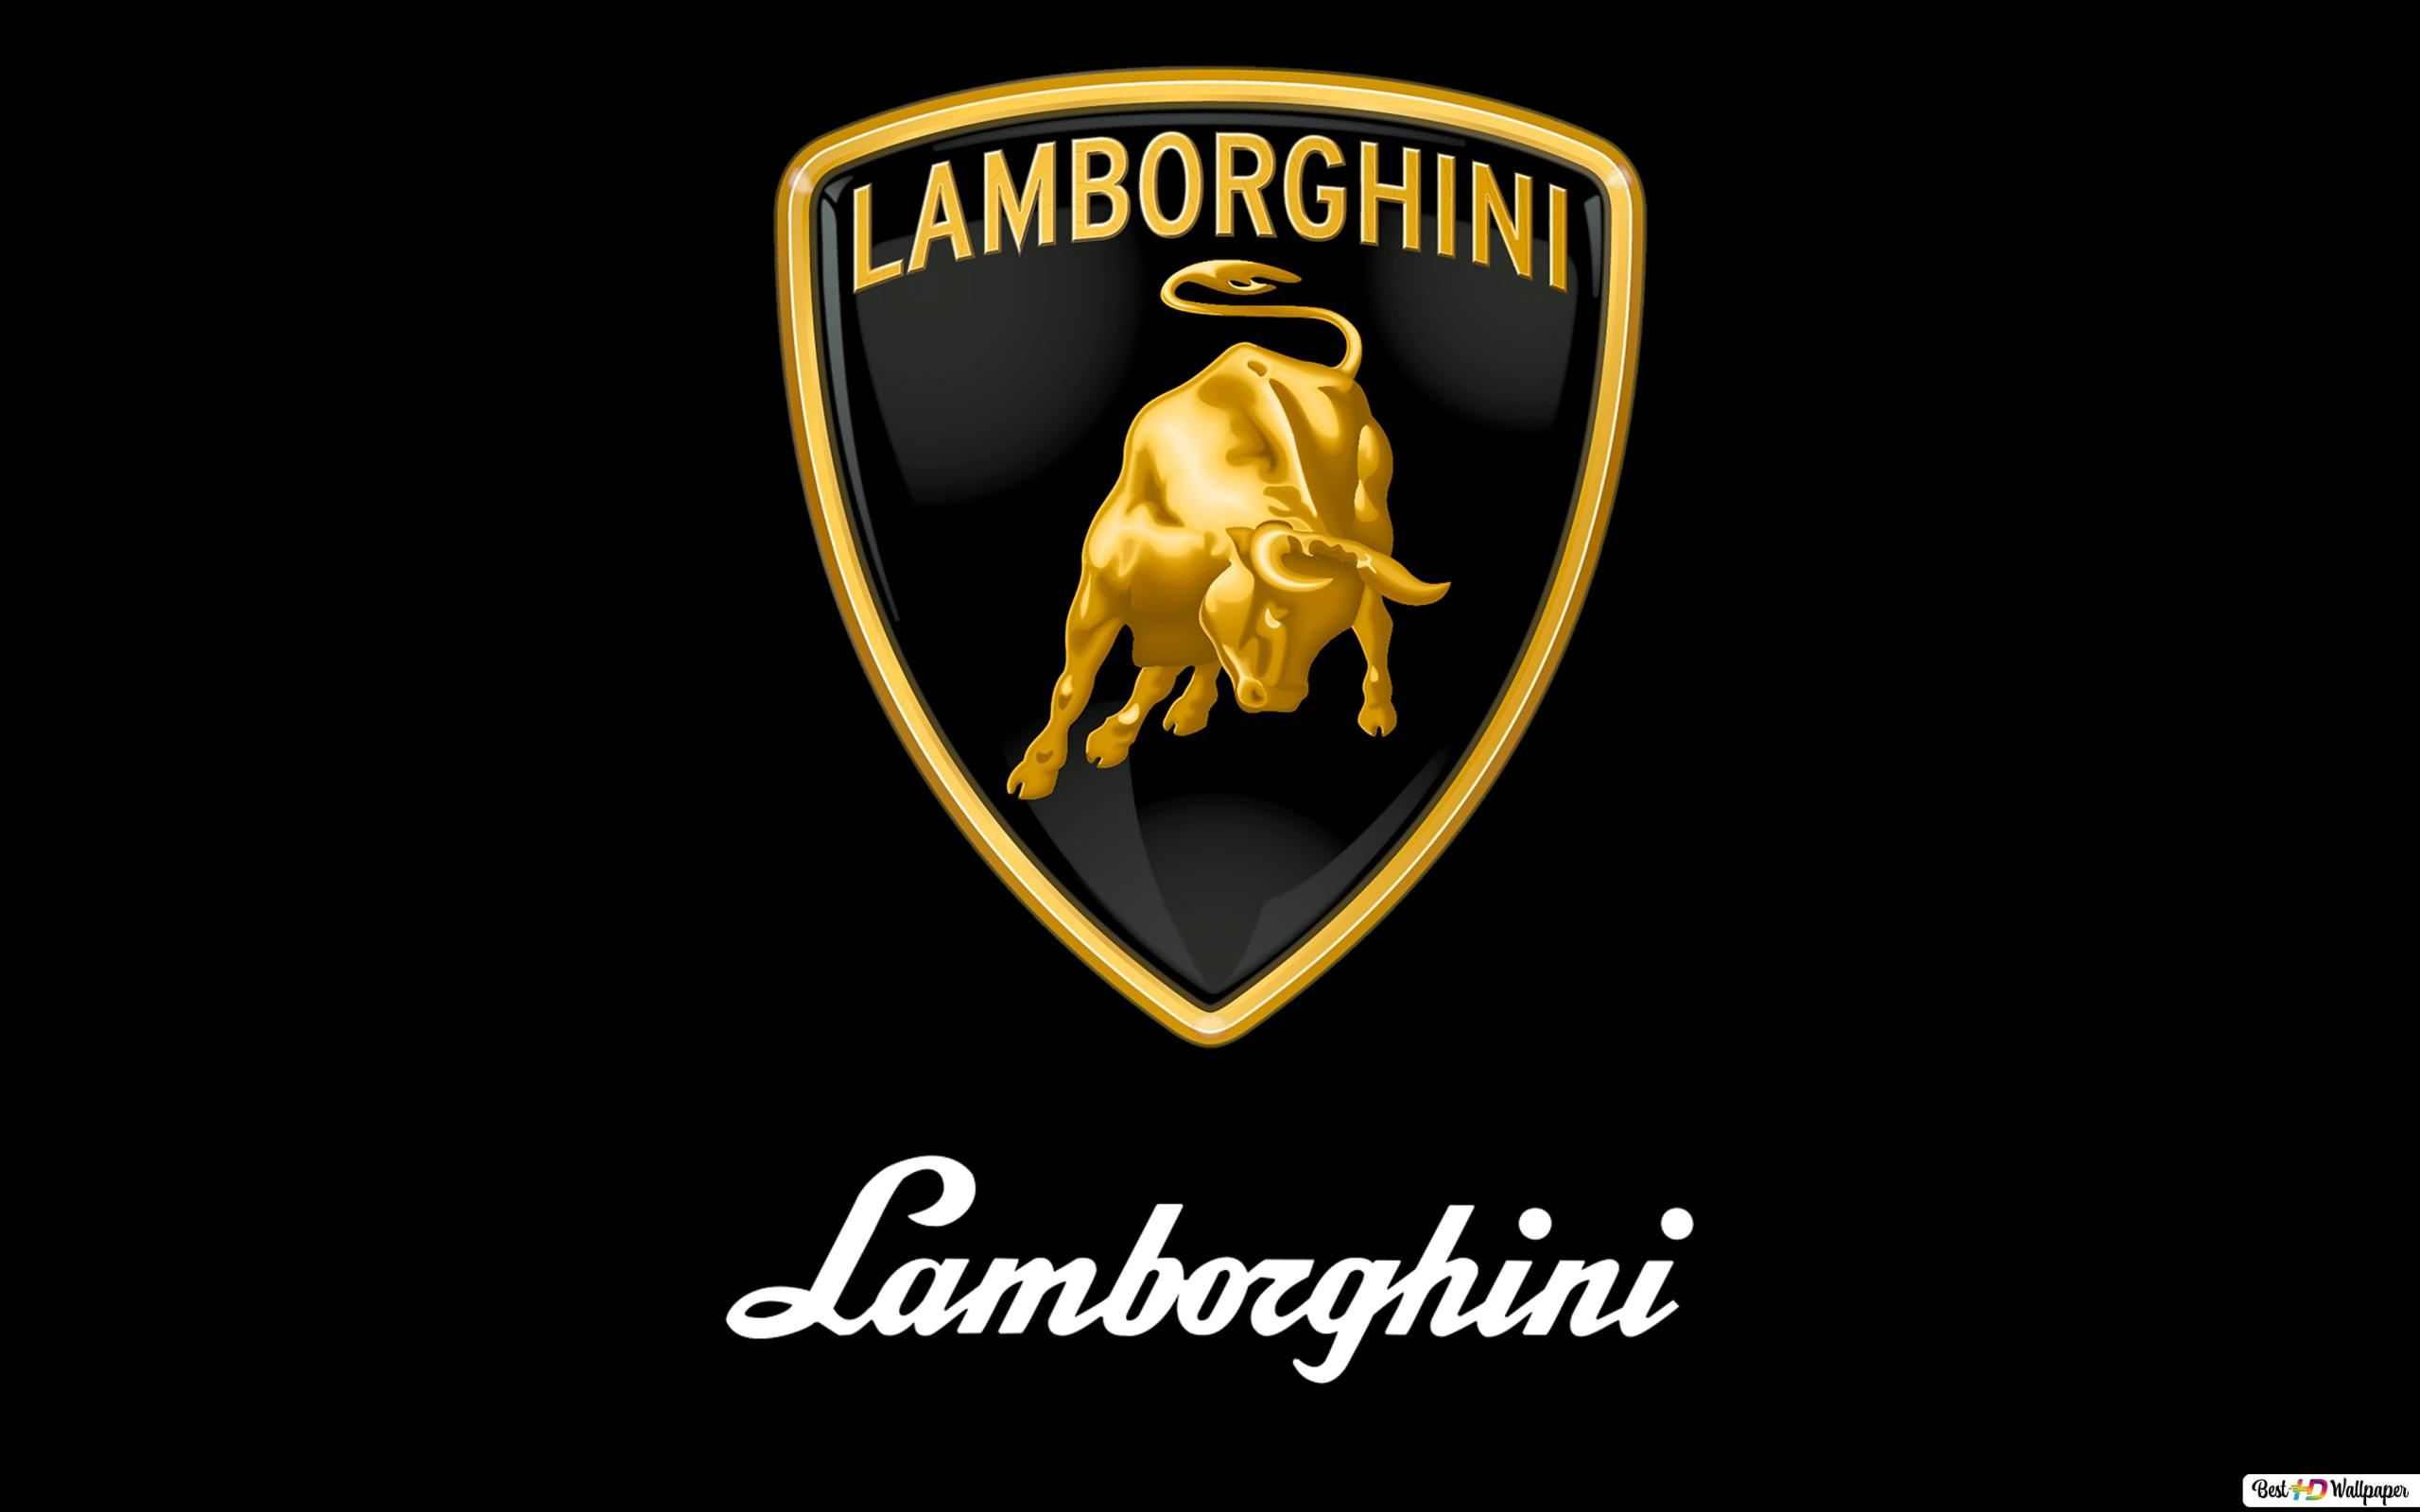 Lamborghini Logo Hd Wallpaper Download